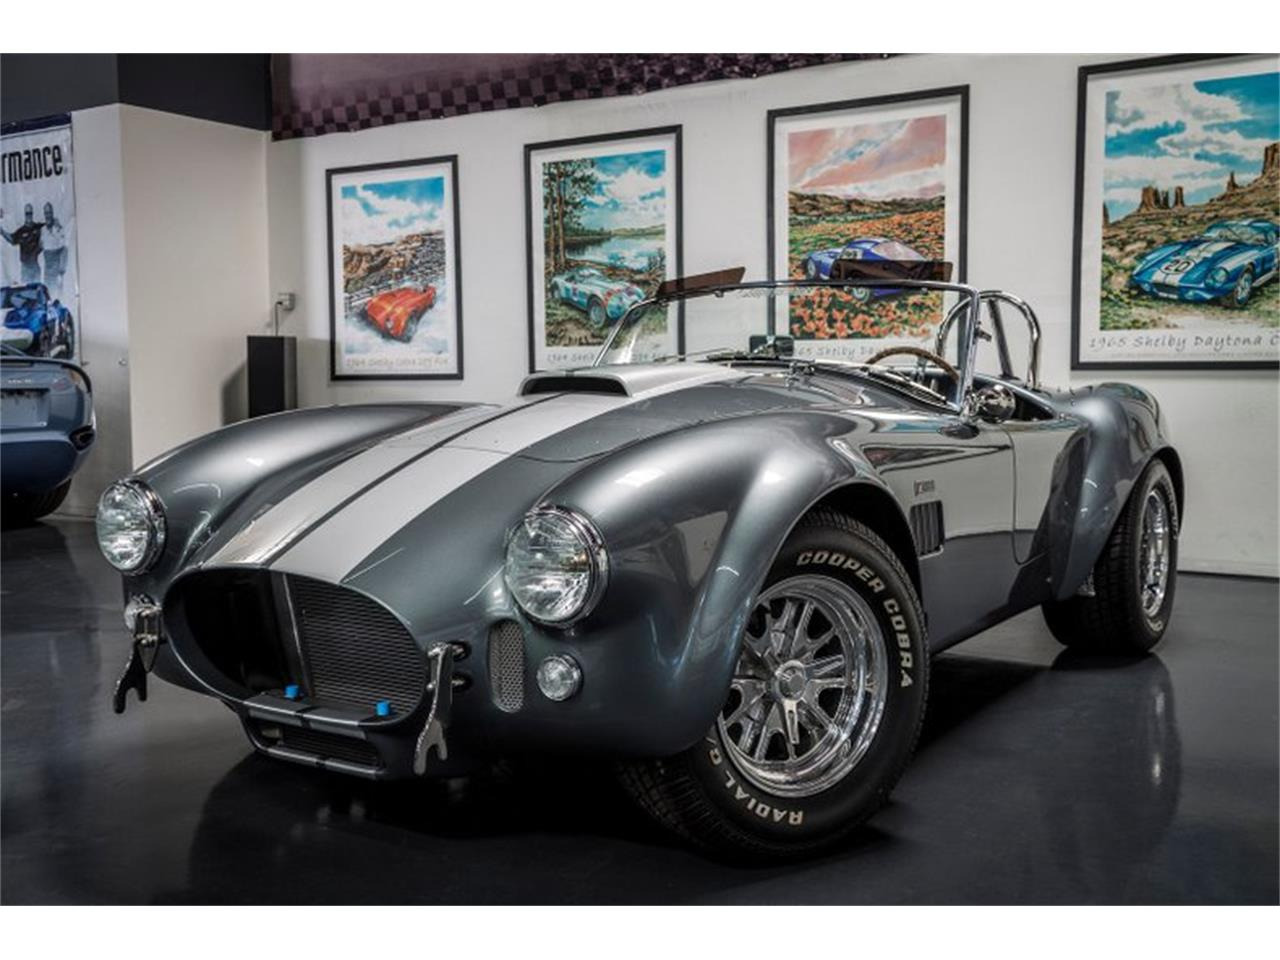 1900 Superformance MKIII (CC-1306949) for sale in Irvine, California